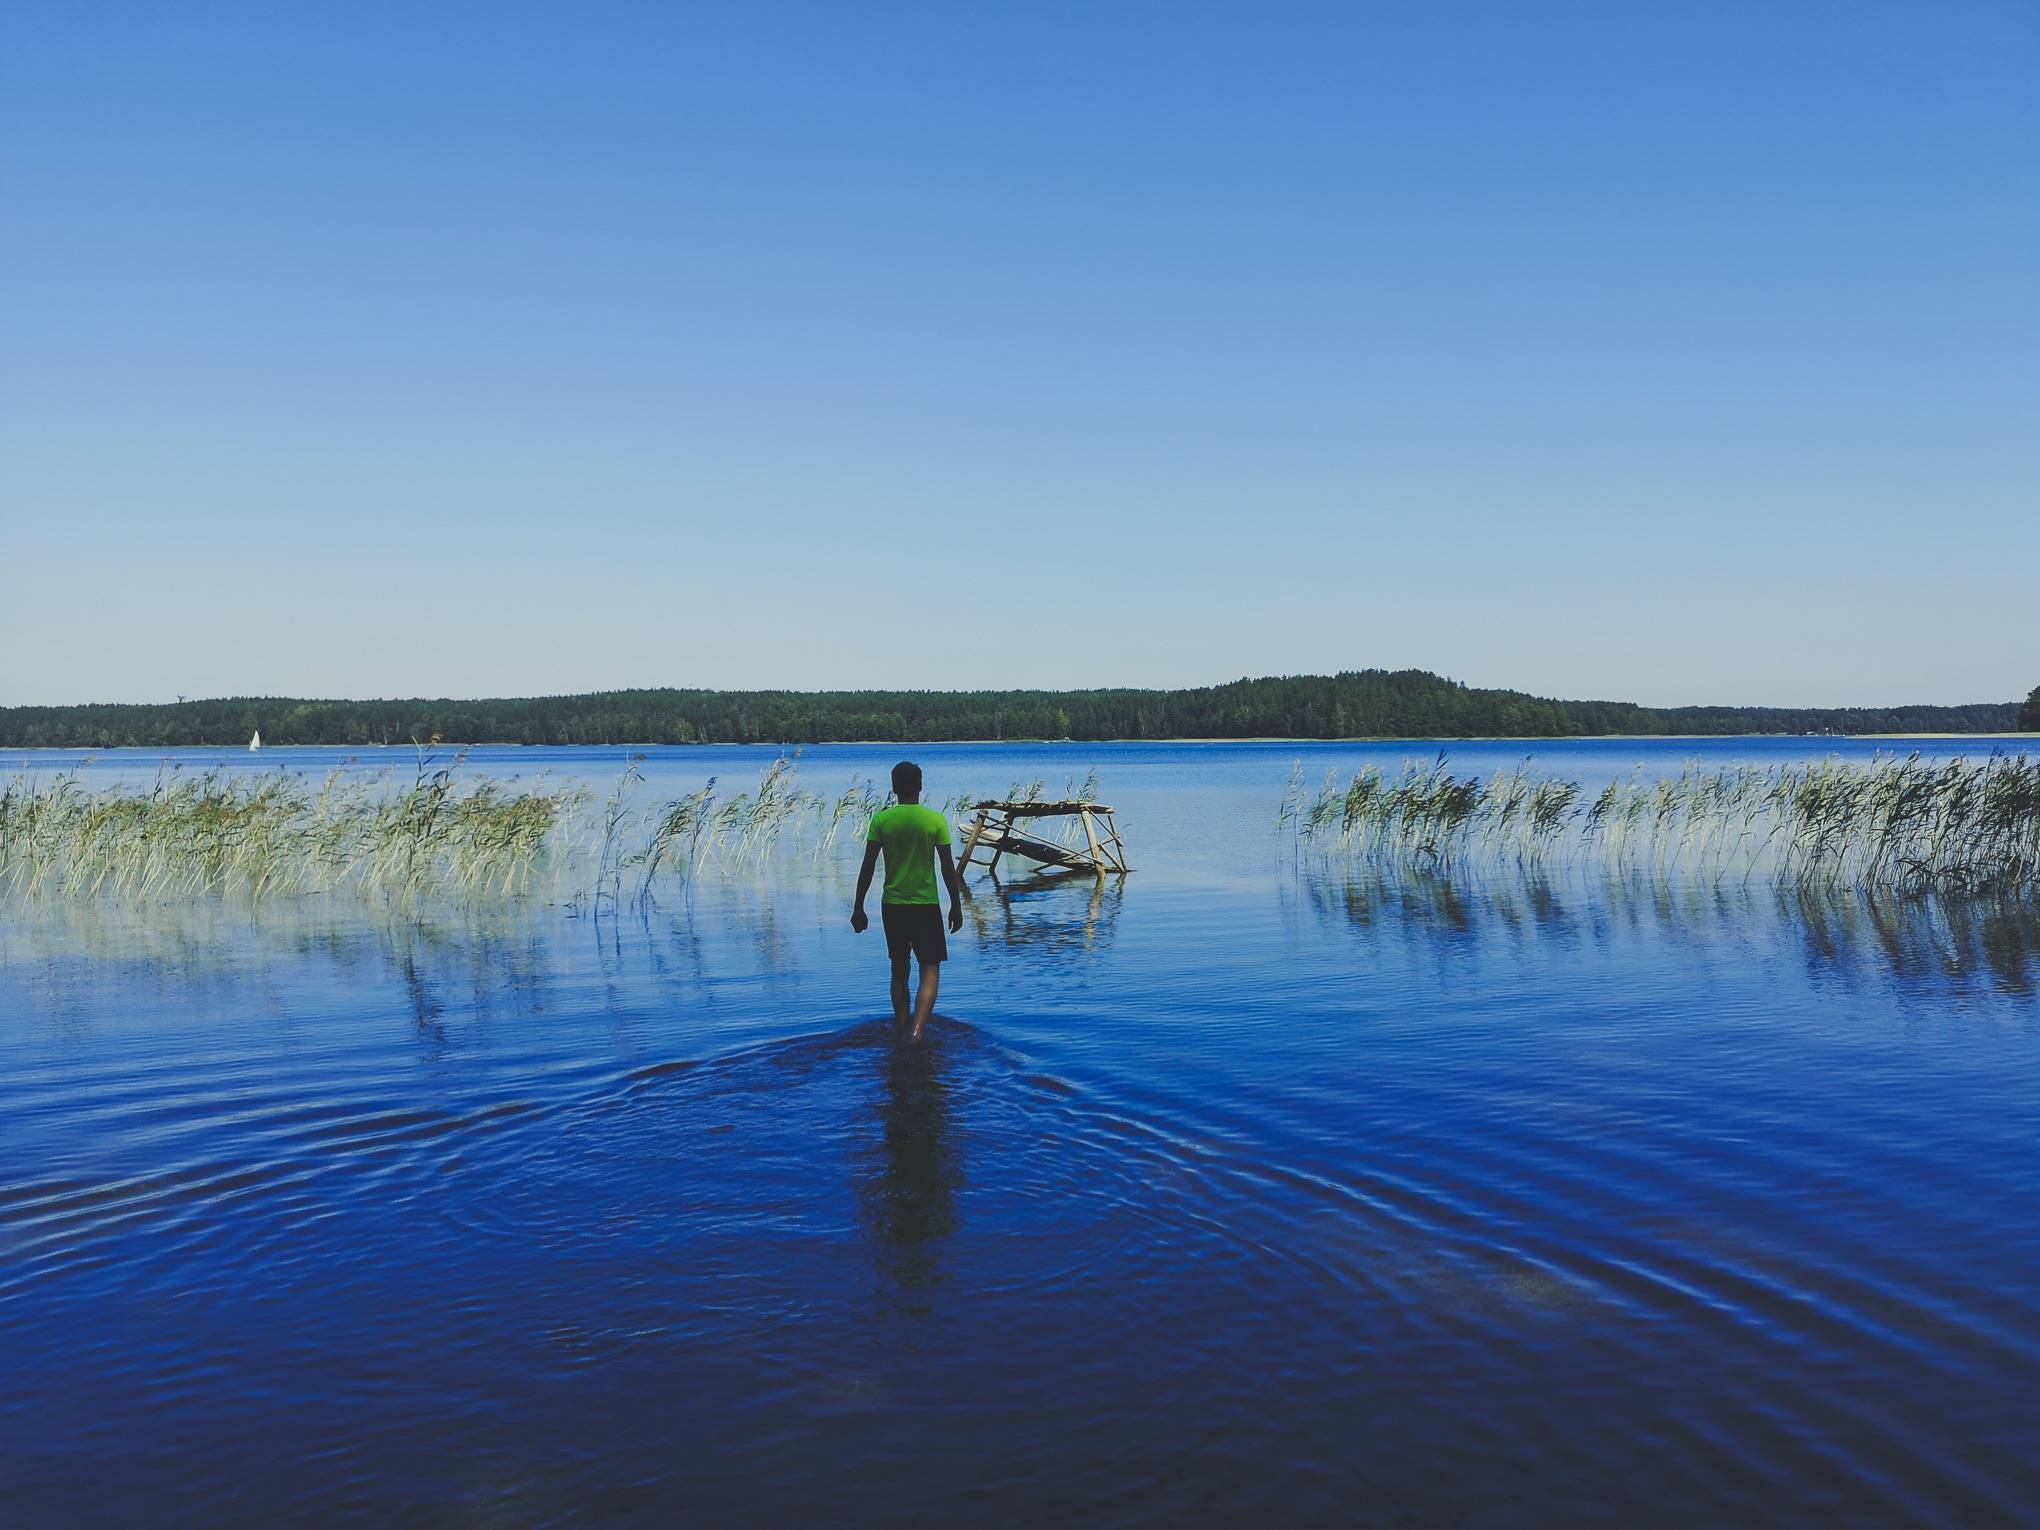 Wading on White Lakajai Lake in Labanoras Regional Park, Lithuania. Photo Alis Monte [CC BY-SA 4.0], via Connecting the Dots